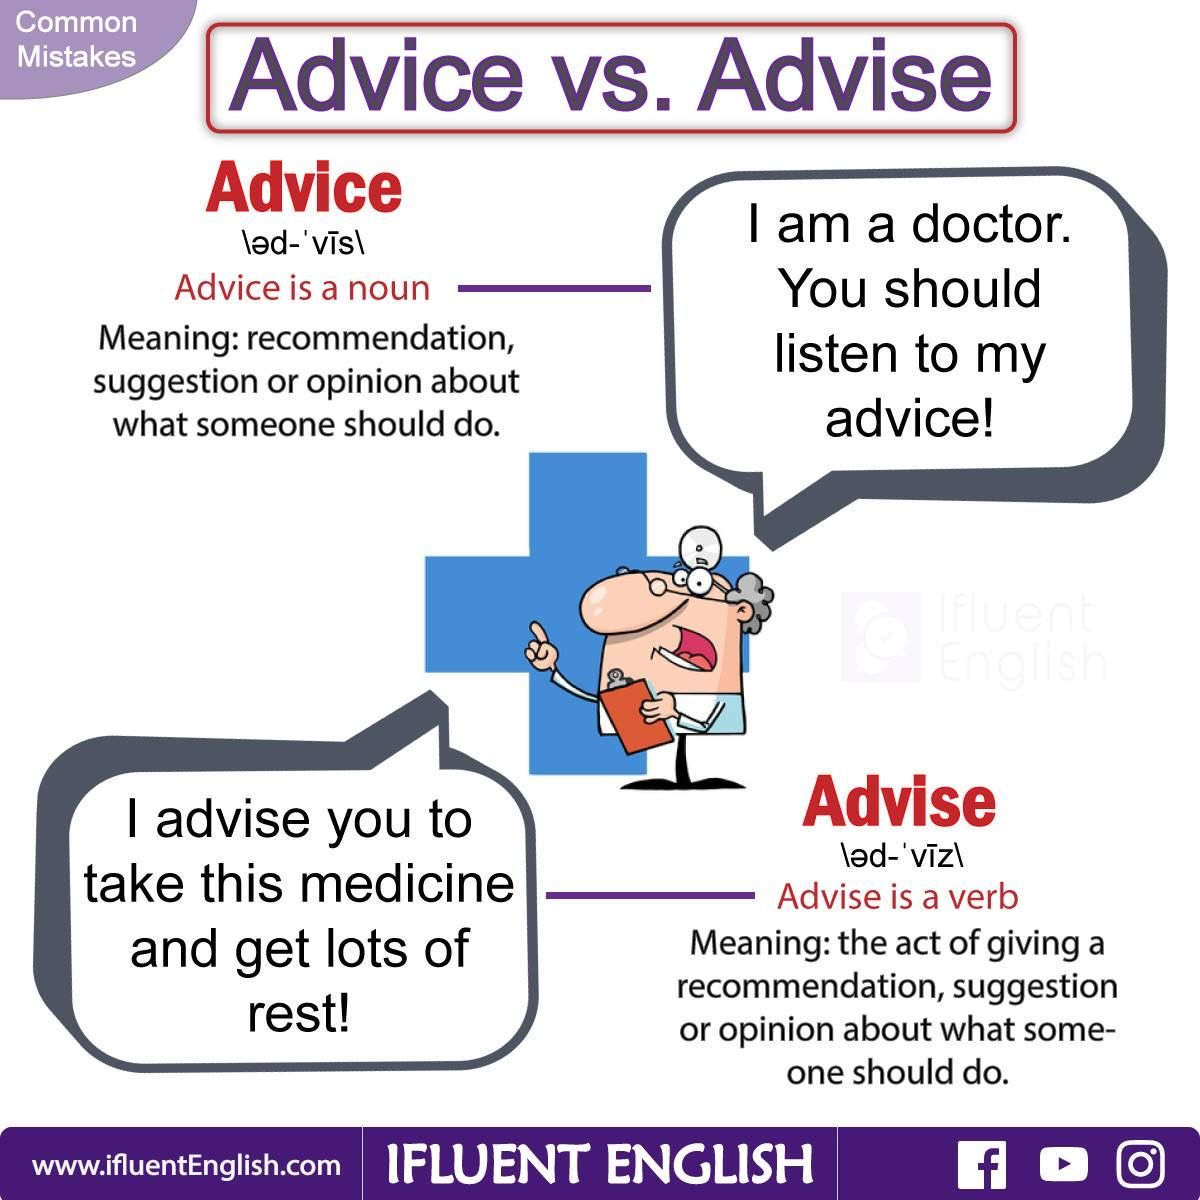 Common mistakes advice vs advise english language esl efl online english lessons with a certified teacher from london uk conversational english business english and ieltstoefl preparation 1betcityfo Choice Image